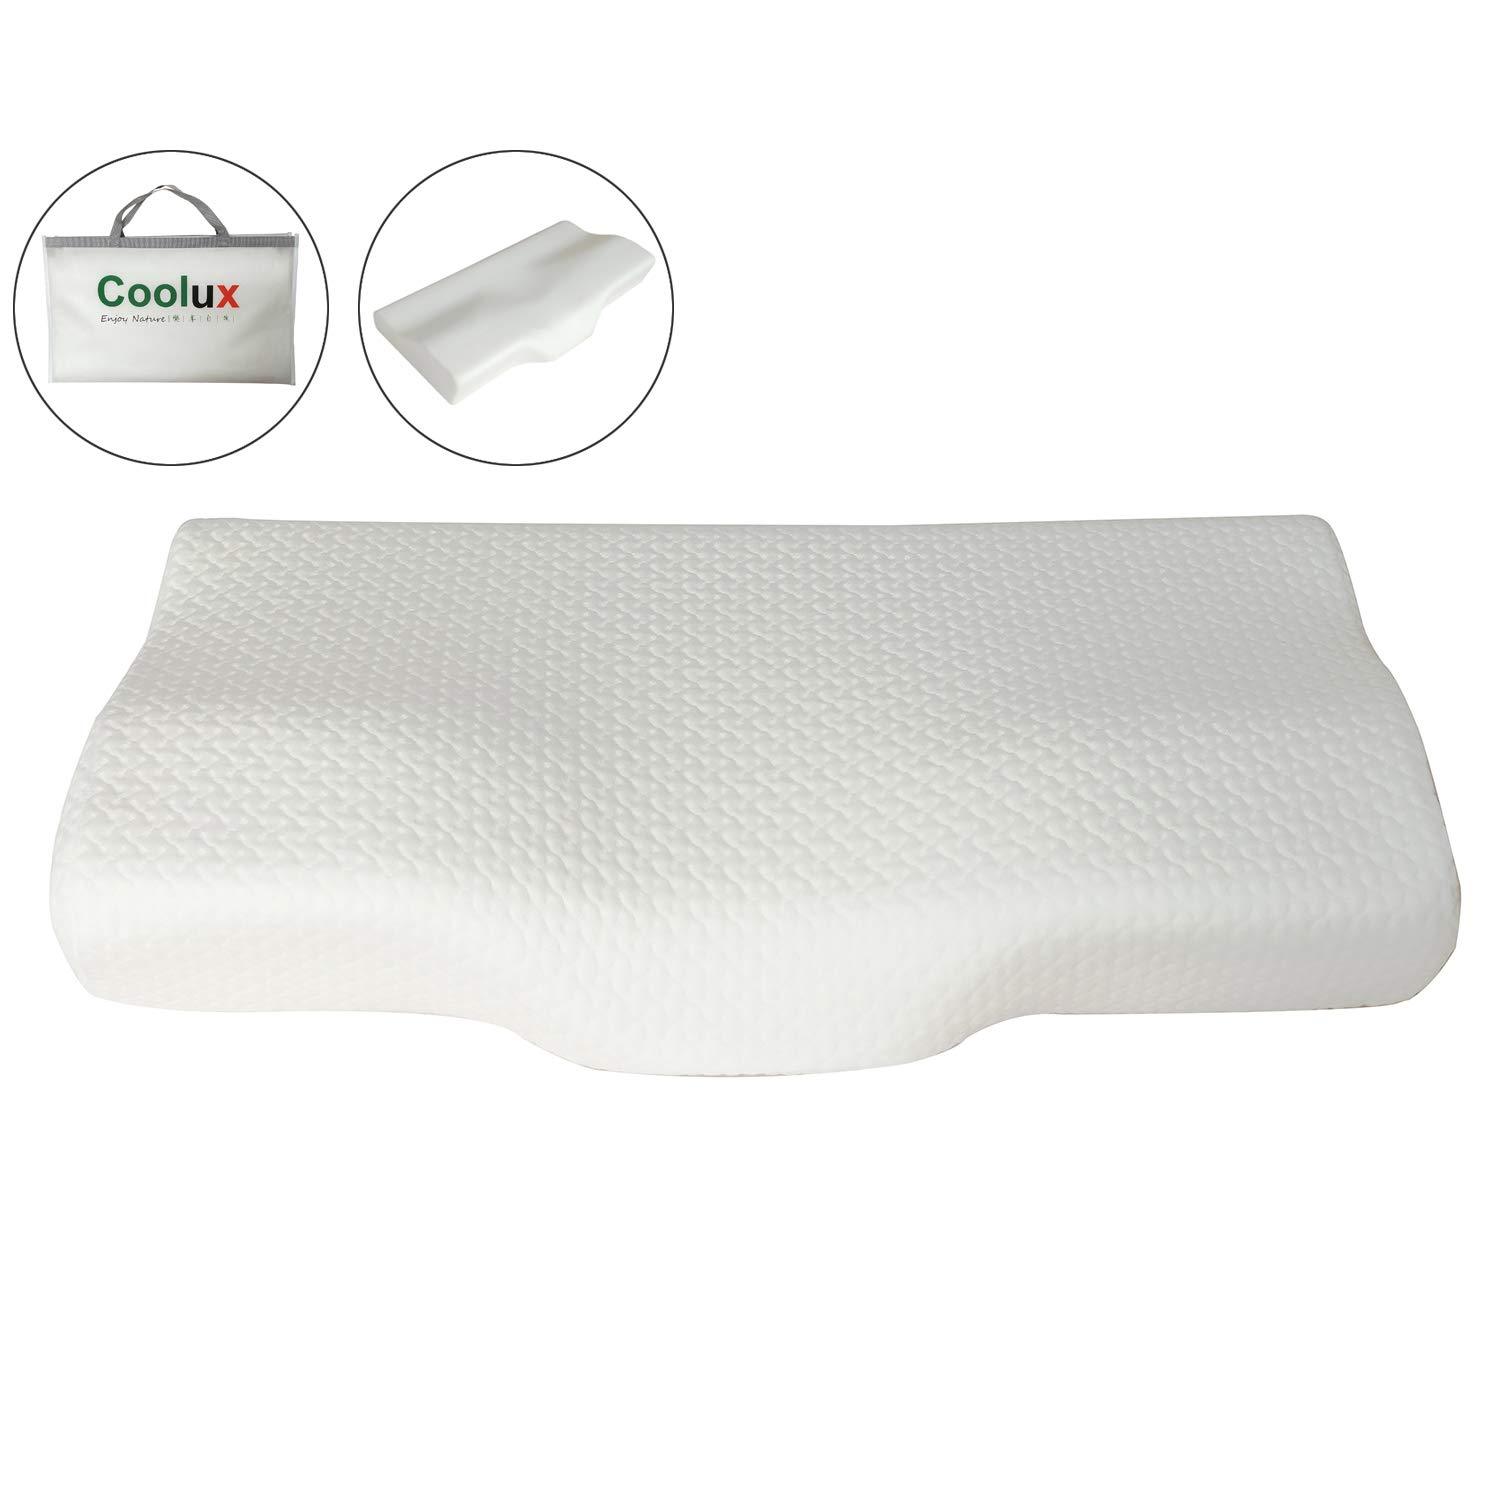 Sleep Support Pillow for Back/Side Sleepers, Cervical Pillow for Neck Pain Relief, Comfortable Feeling